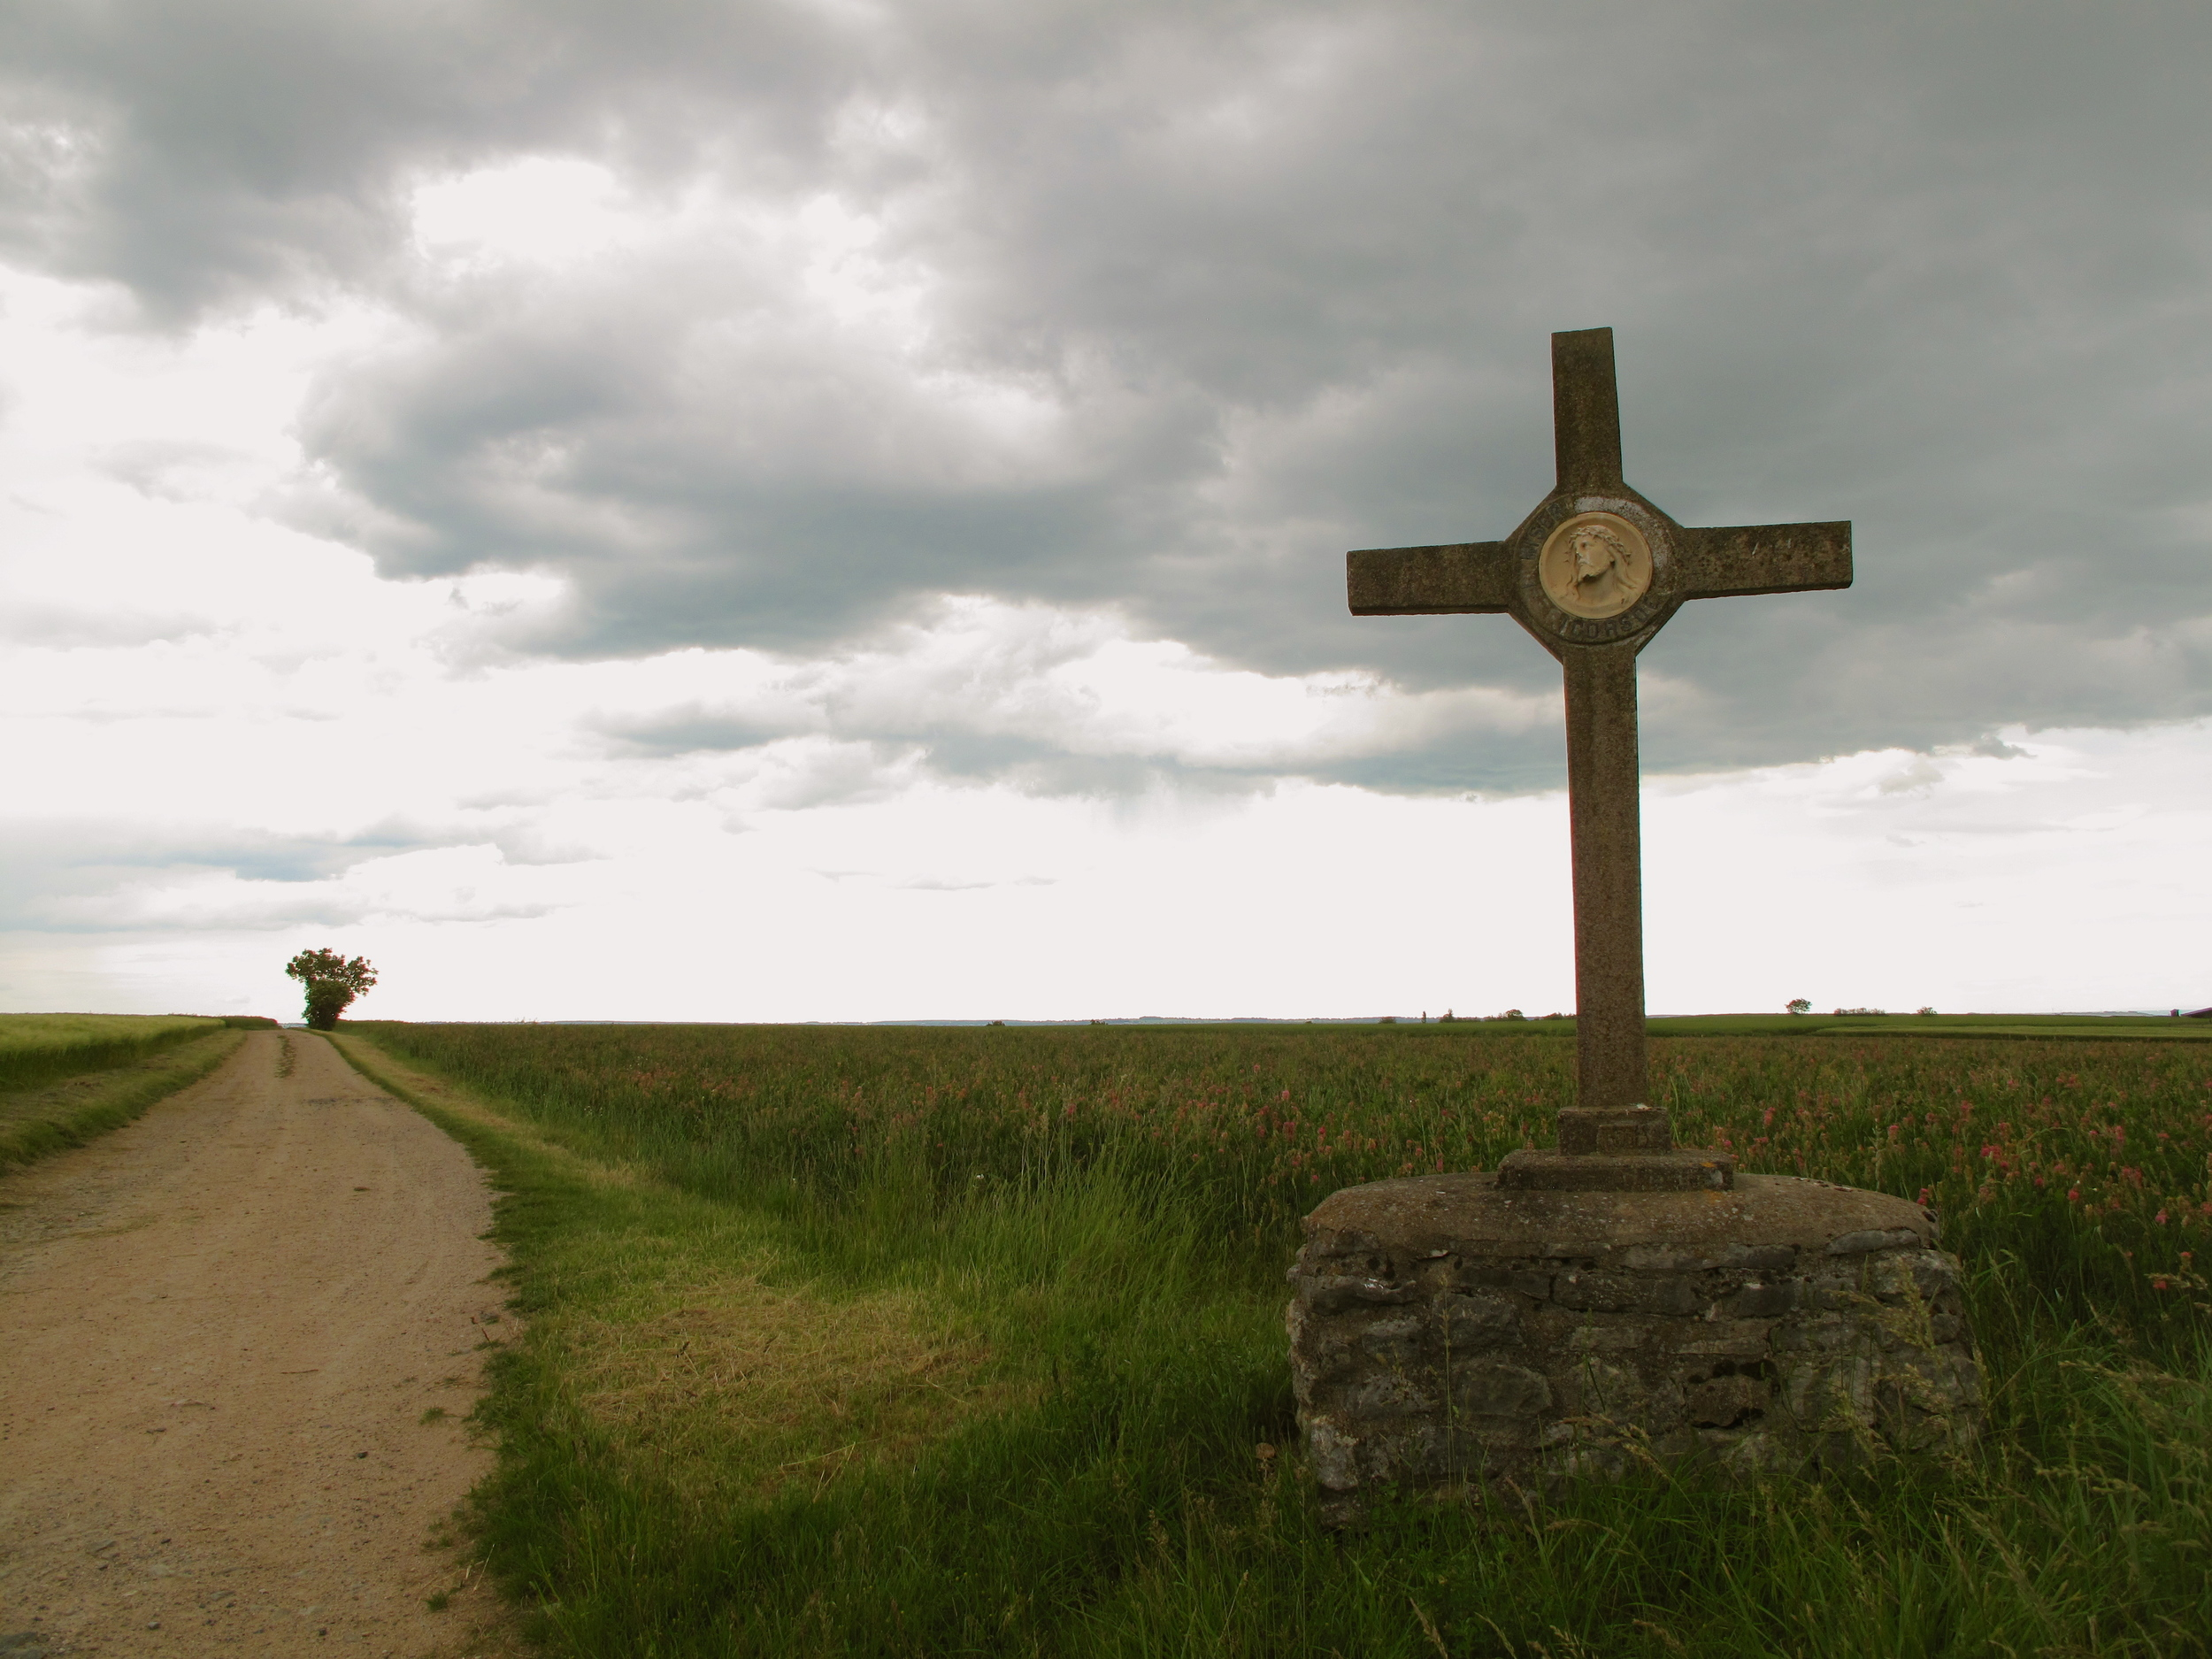 A cross on the roadside and storm clouds, Auvergne